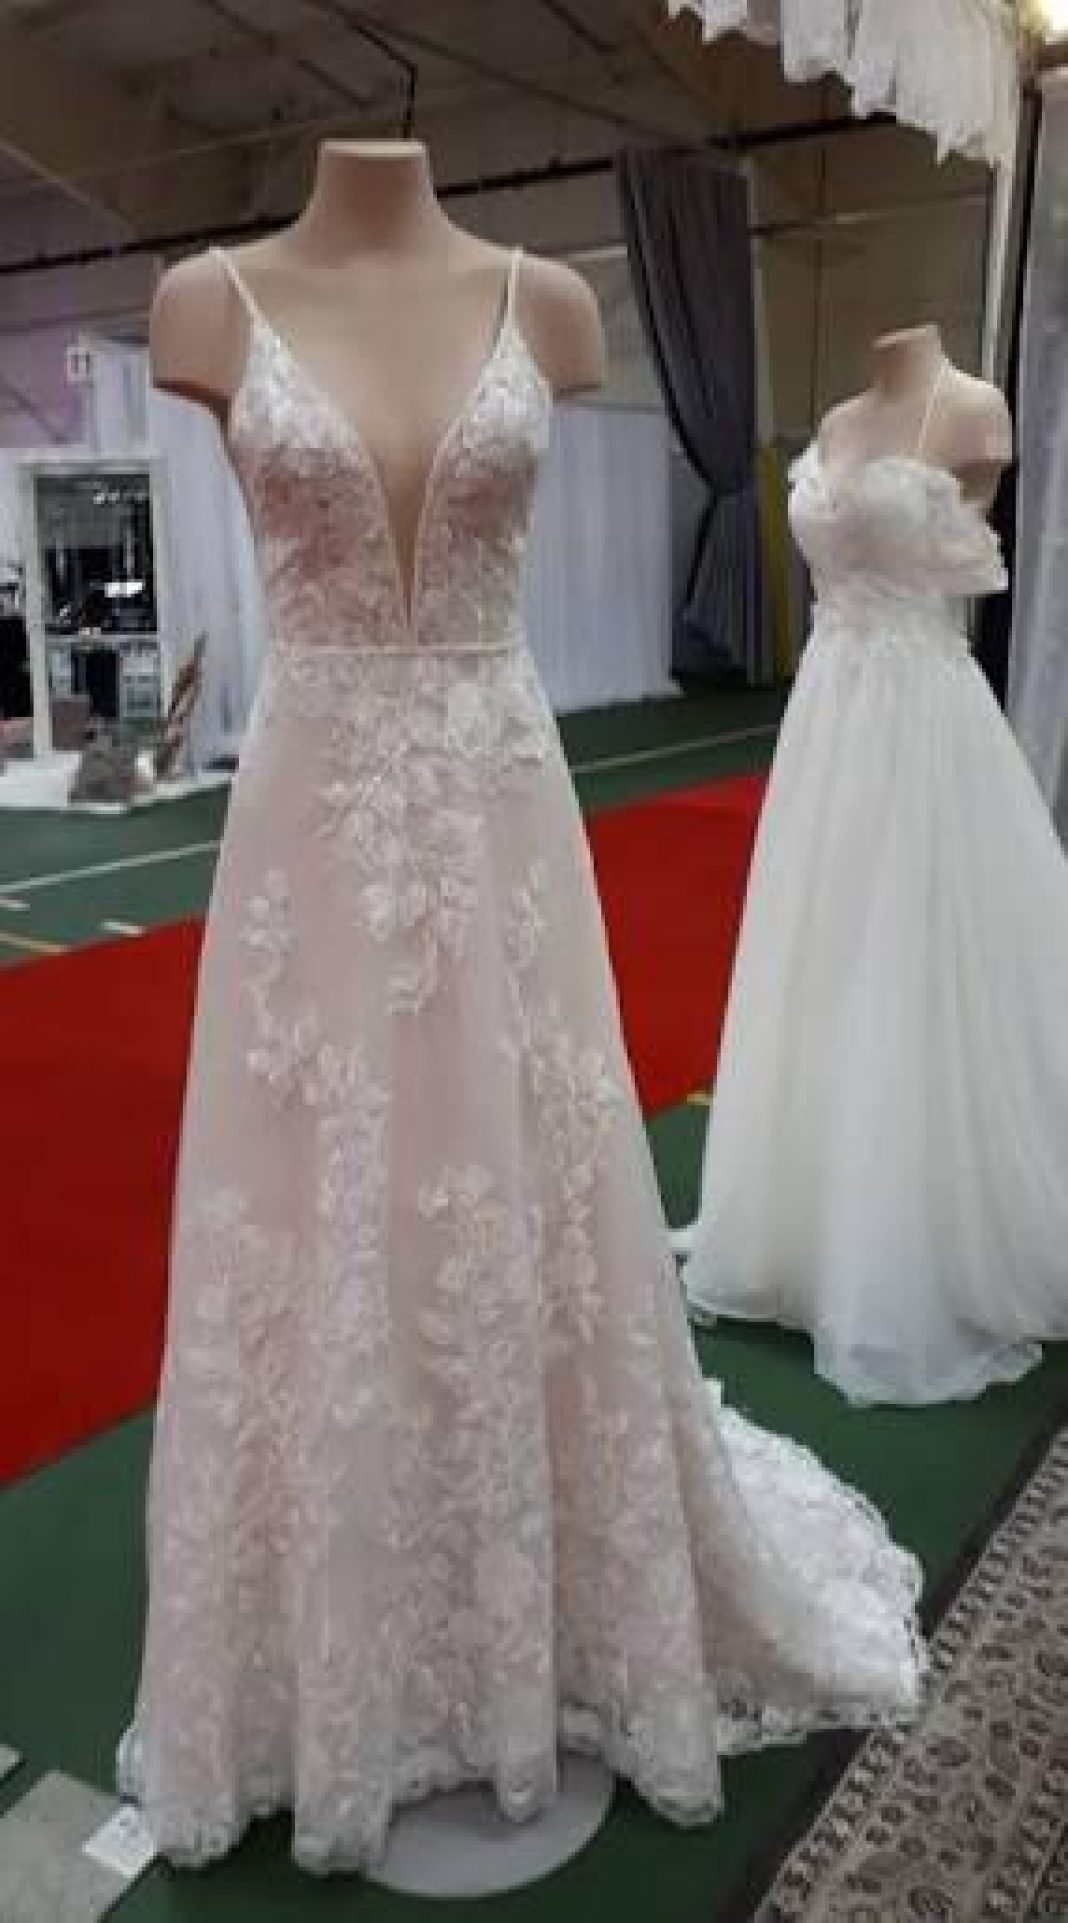 Anyone know any dresses similar to this that are more affordable? : weddingdress